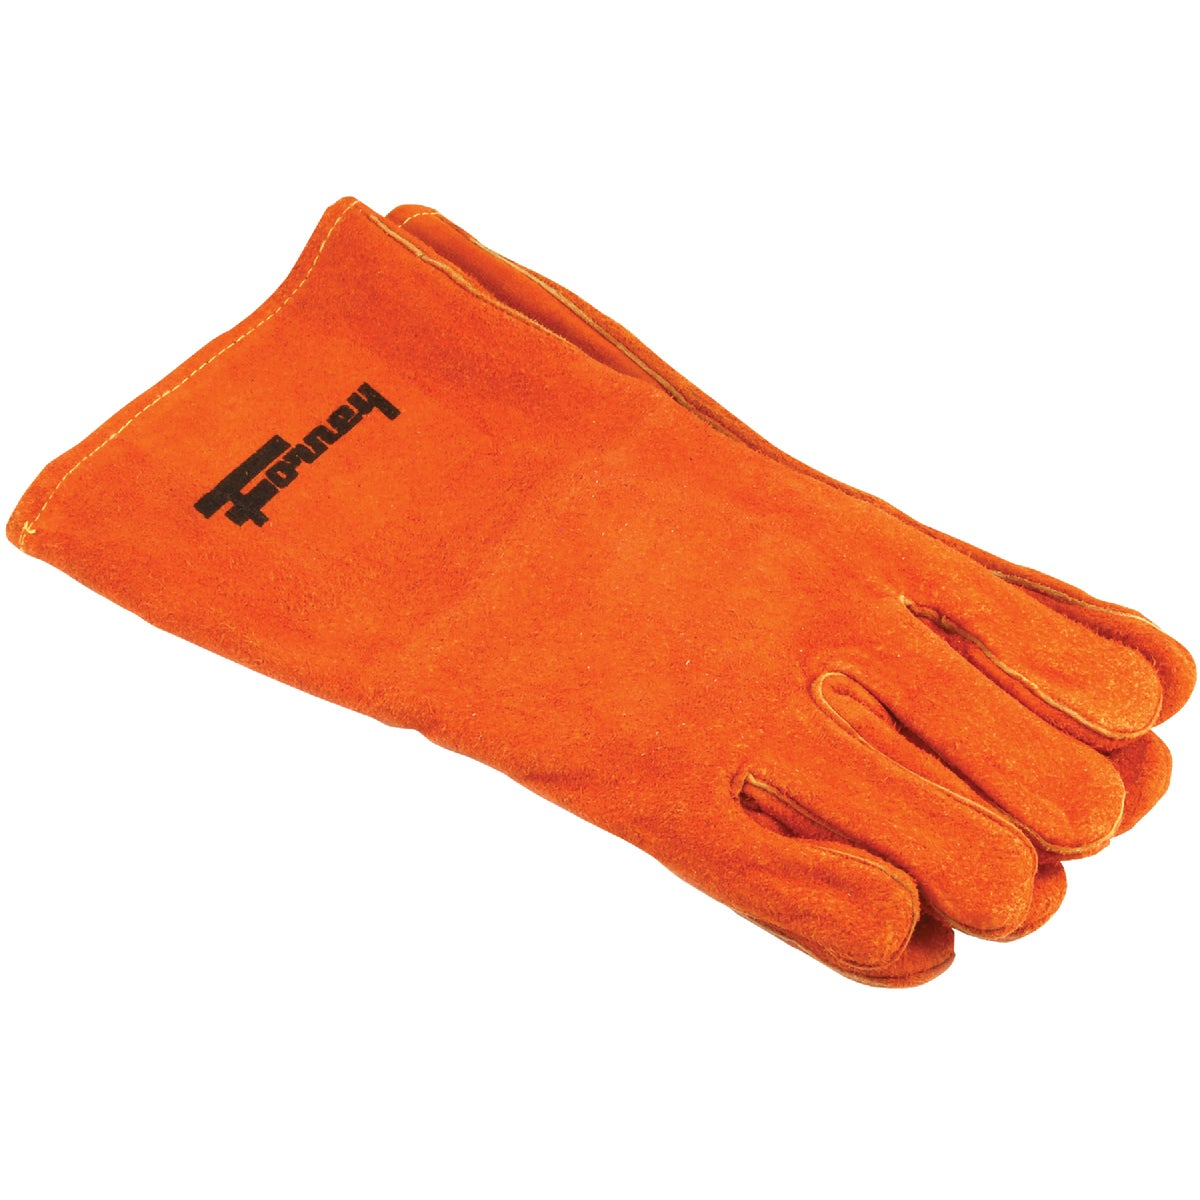 LRG BRN WELDING GLOVE - 55206 by Forney Industries